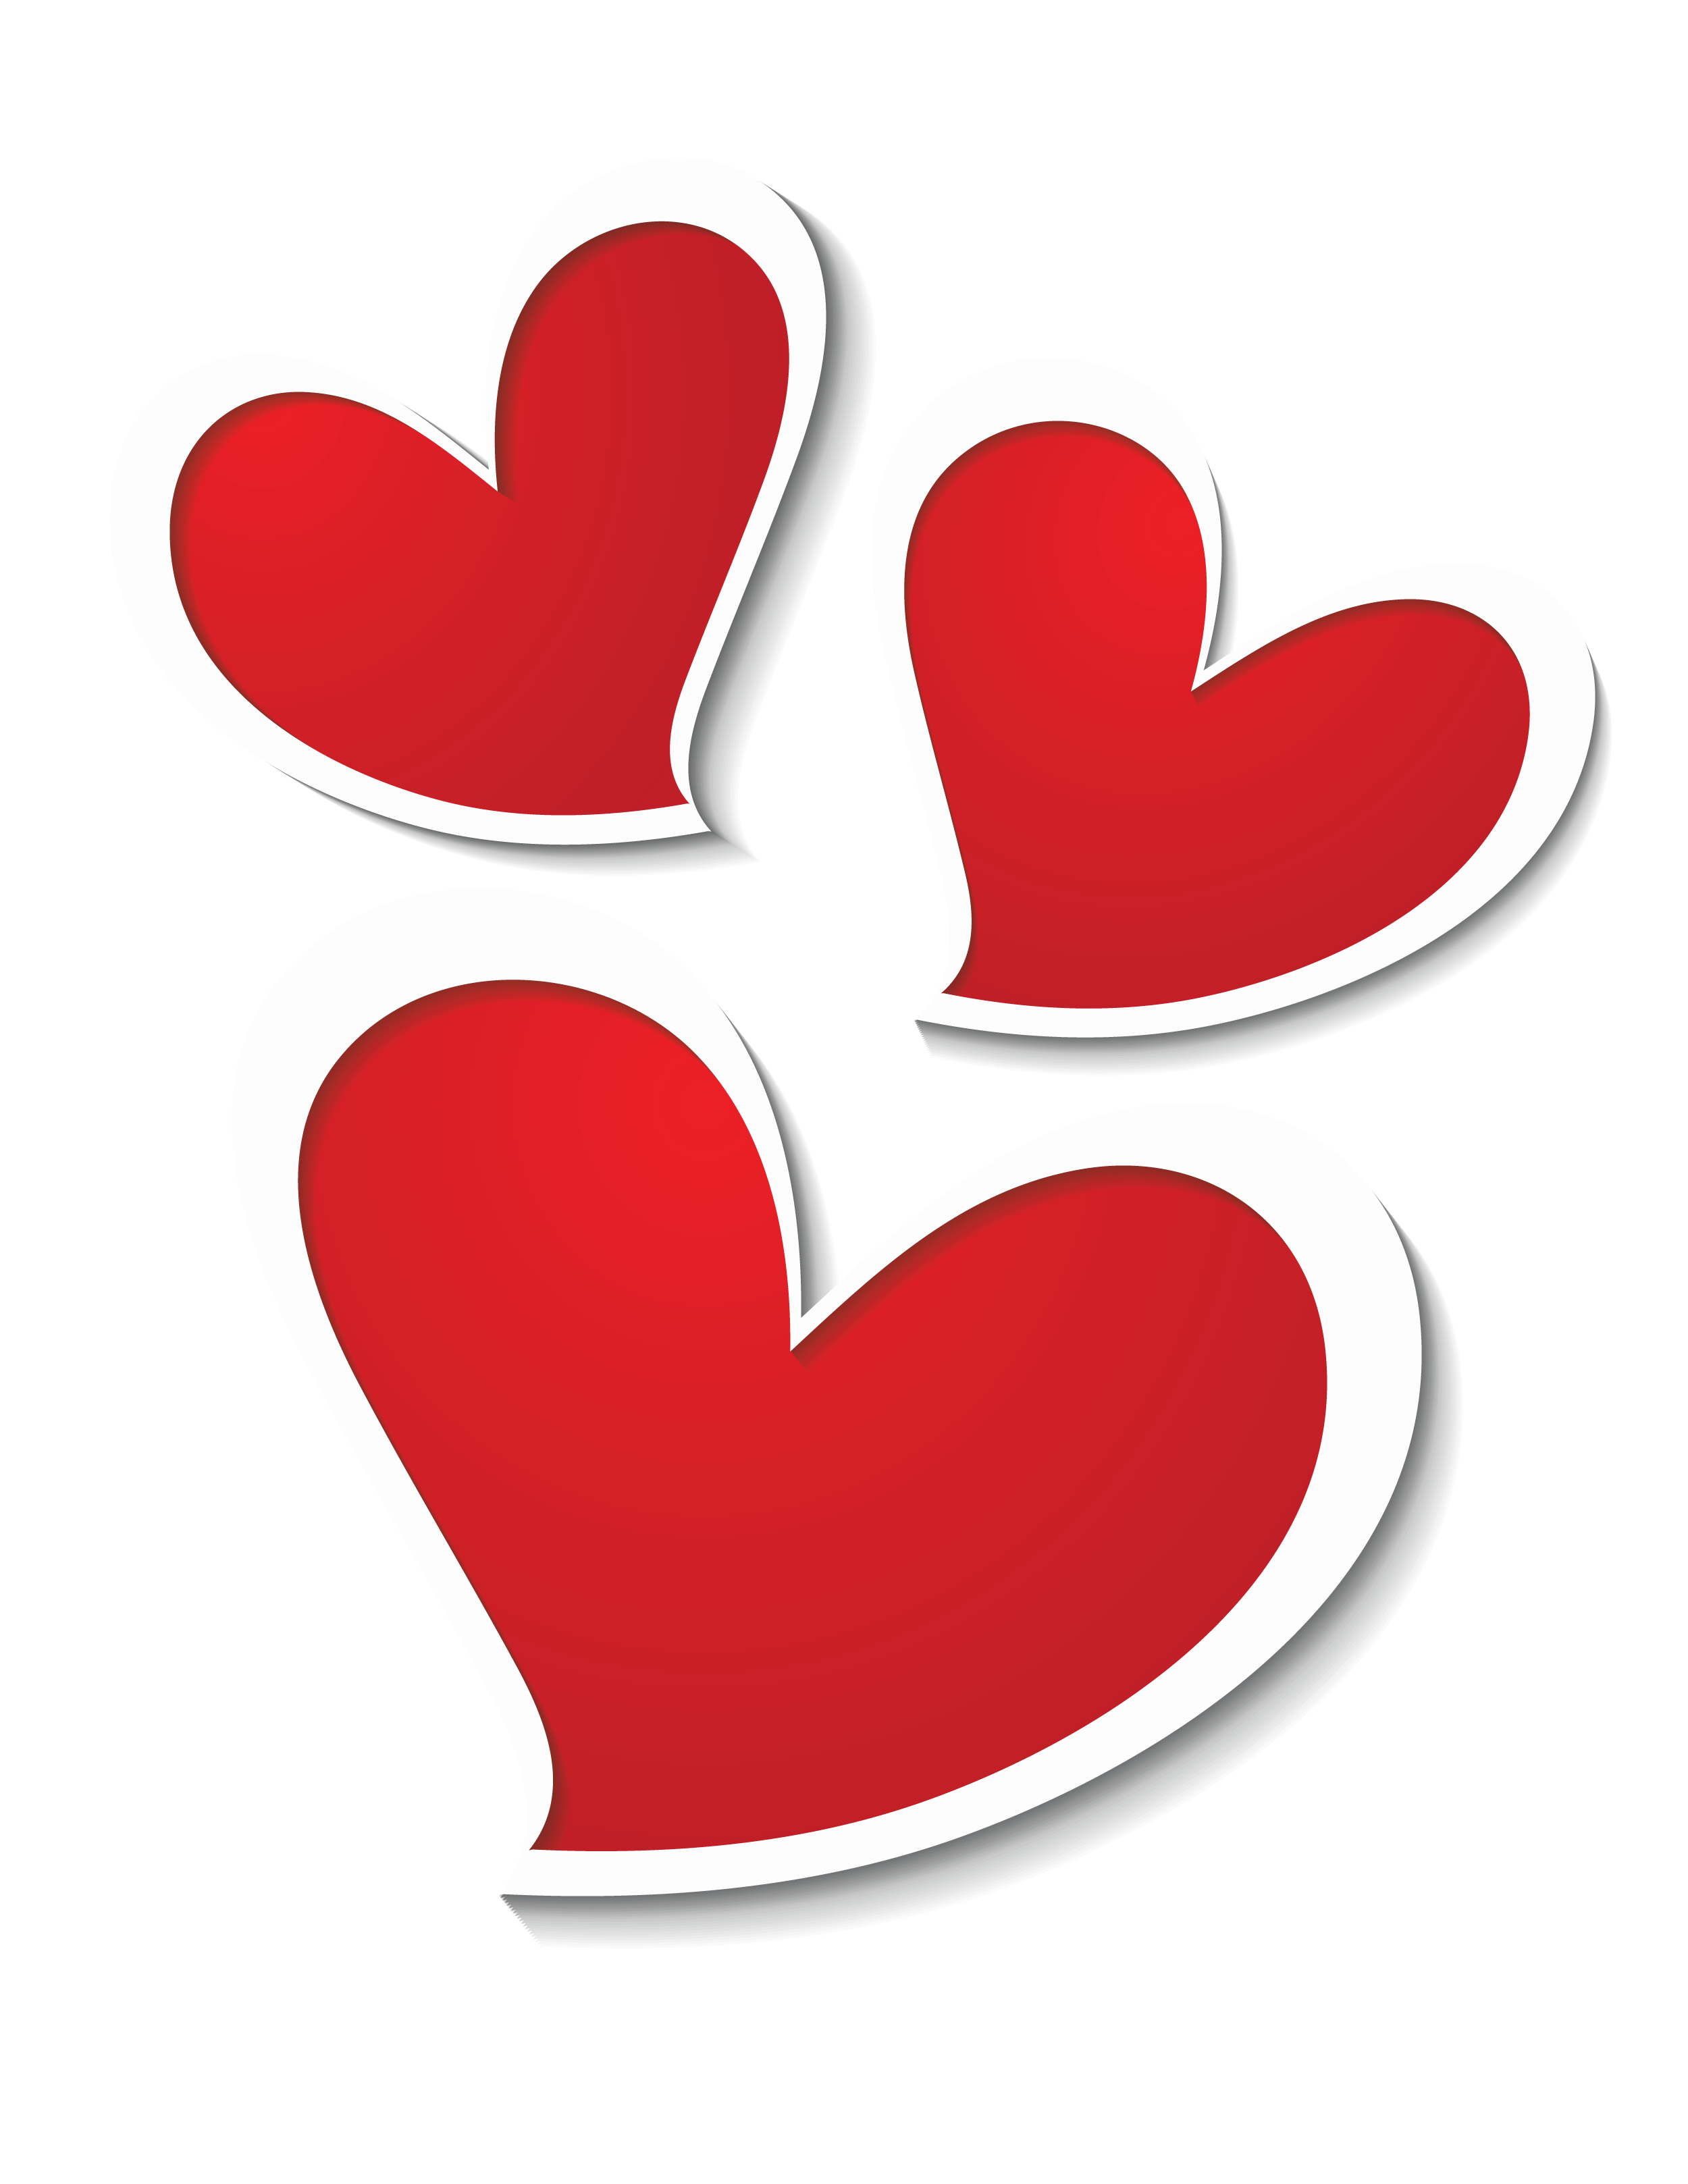 3 hearts png. Three decor clipart picture